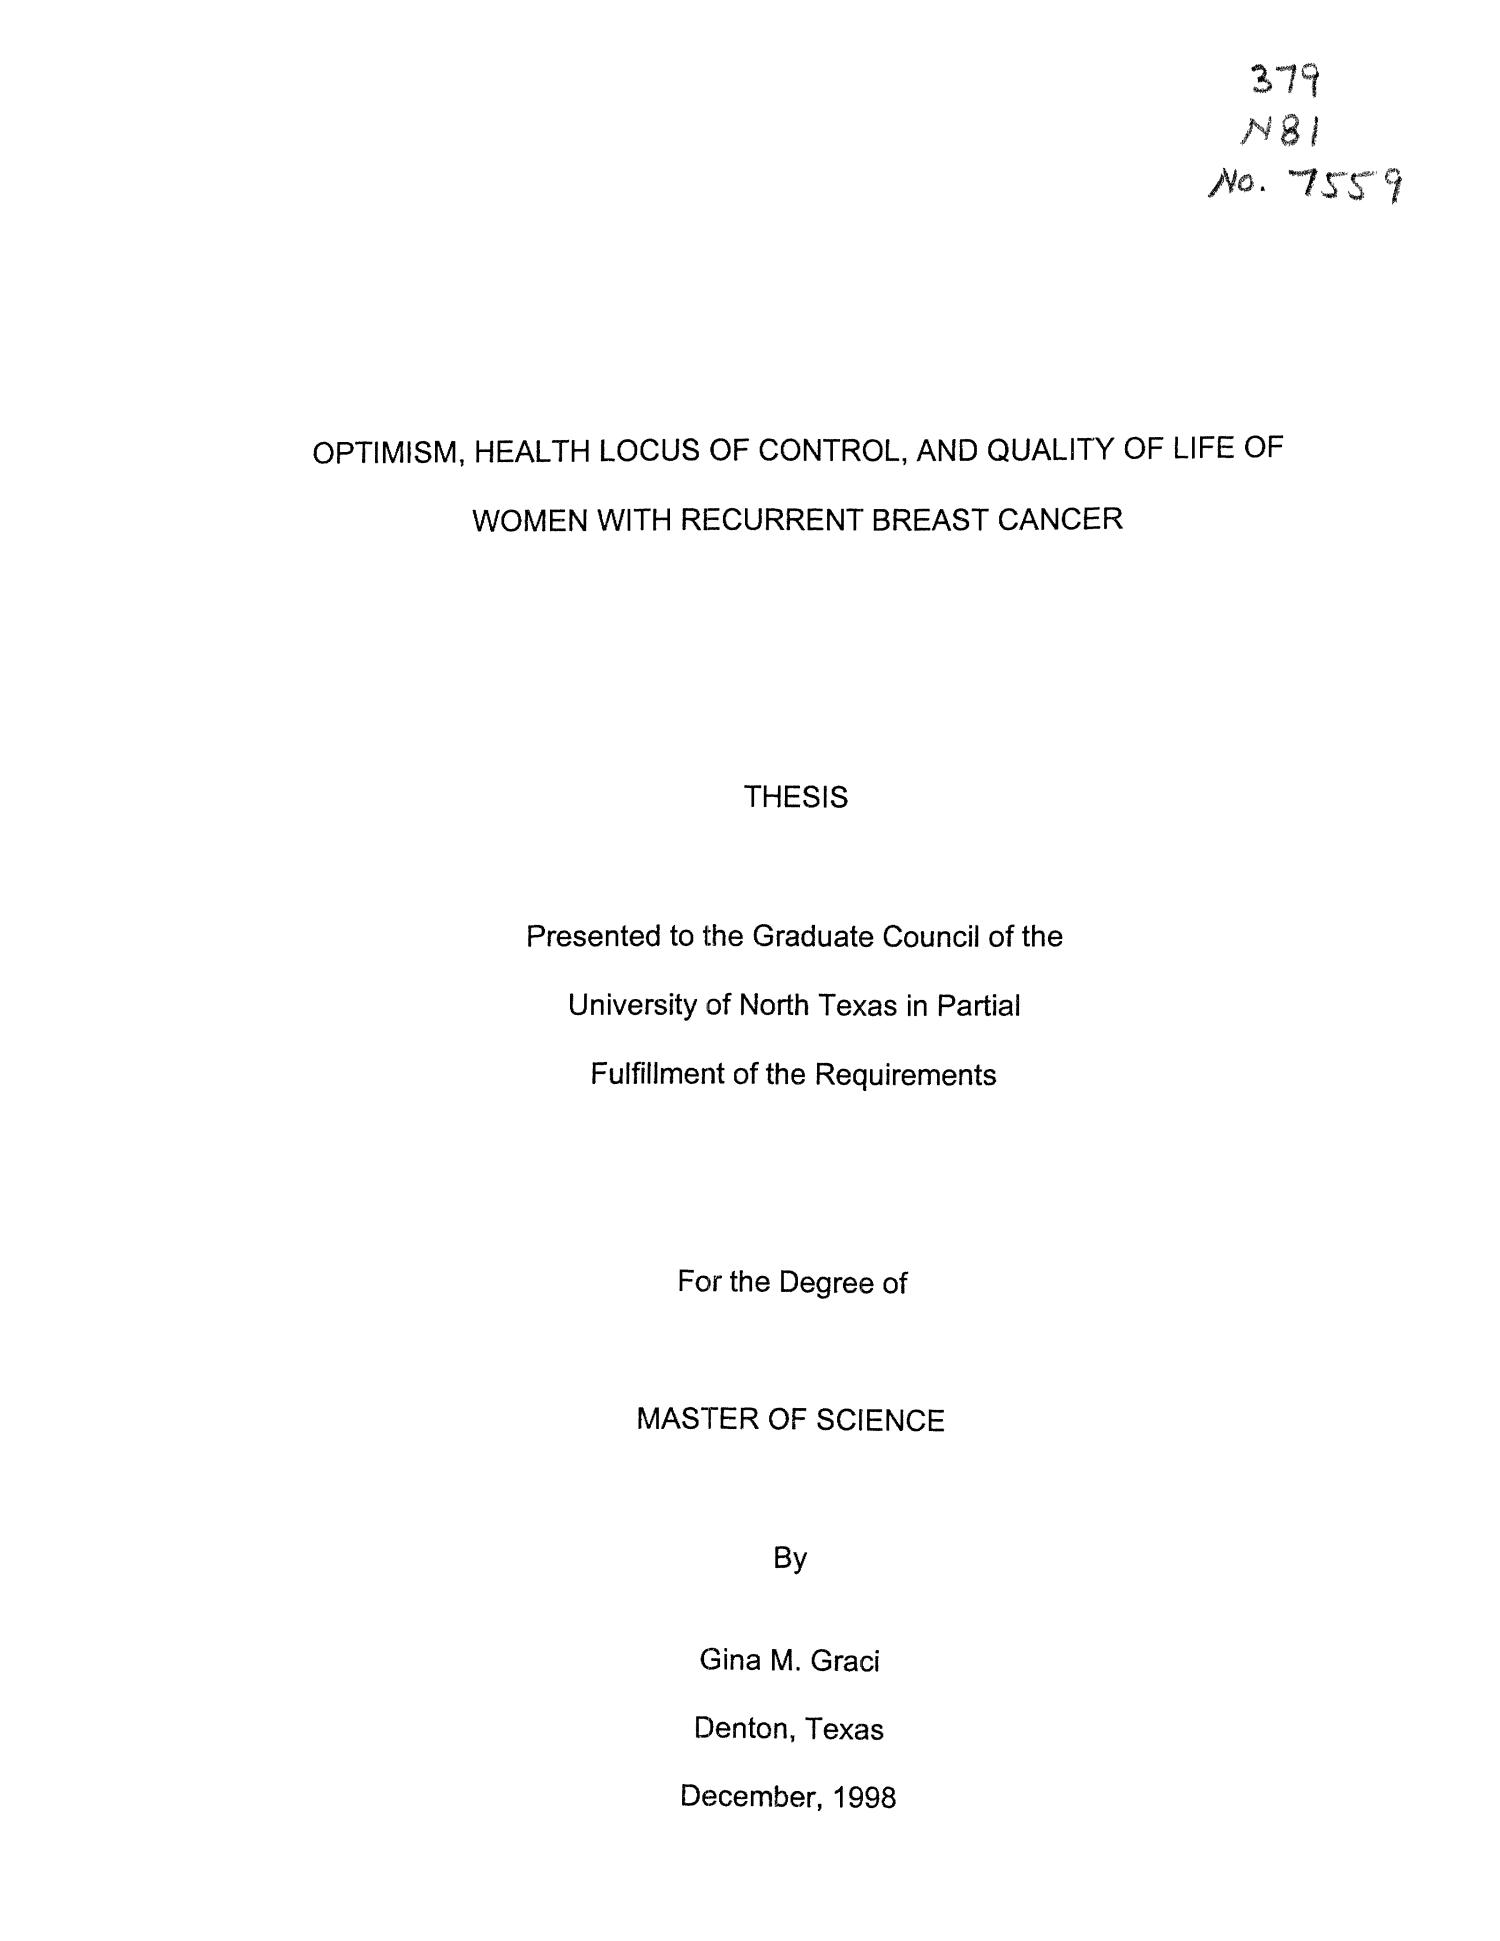 Optimism, Health Locus of Control, and Quality of Life of Women with Recurrent Breast Cancer                                                                                                      Title Page